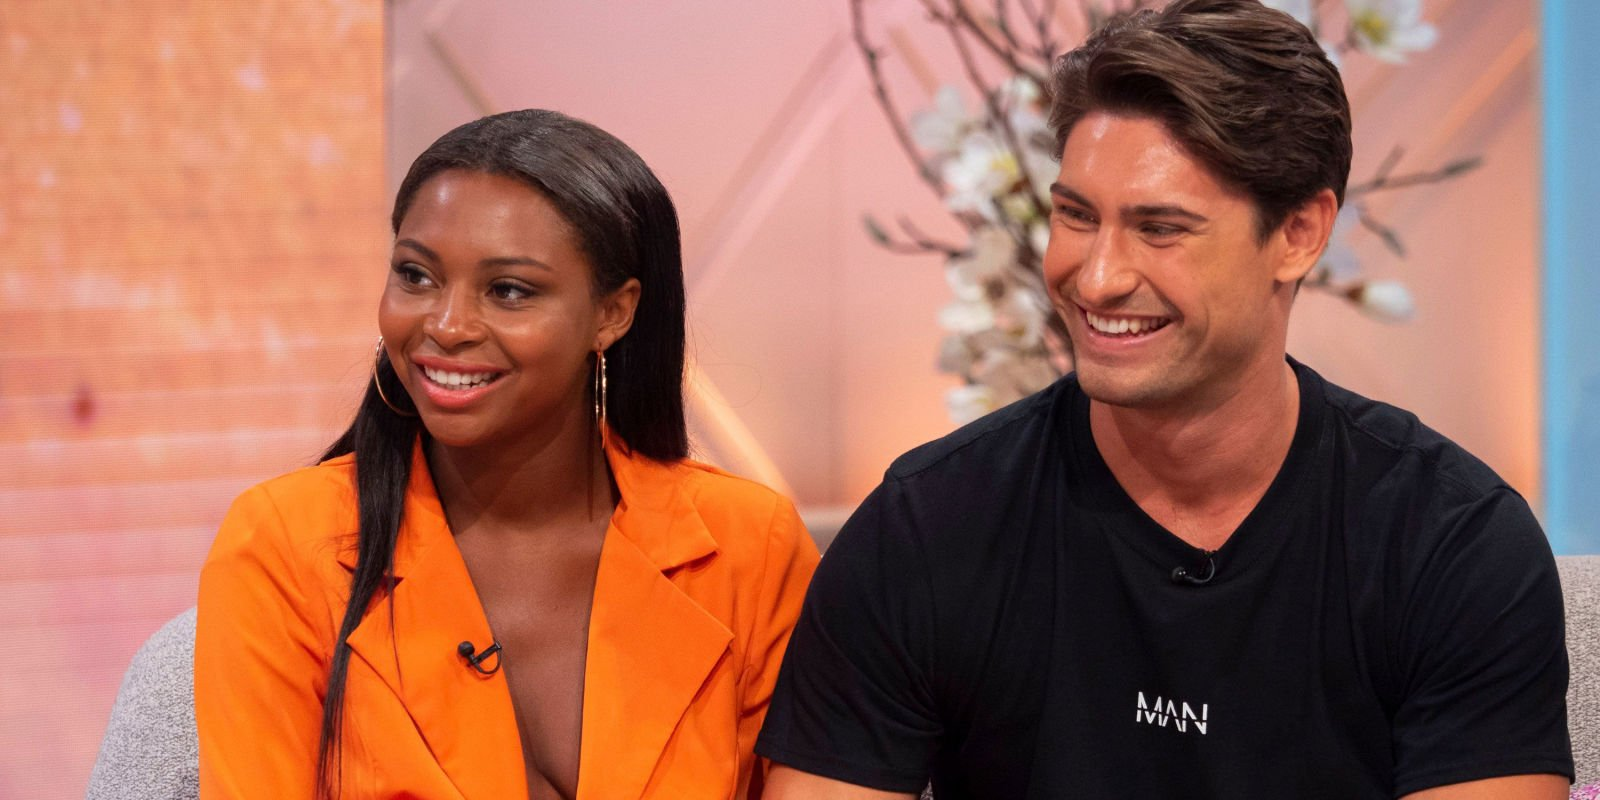 Love Island's Frankie Foster reveals why he DOESN'T want to move in with Samira Mighty